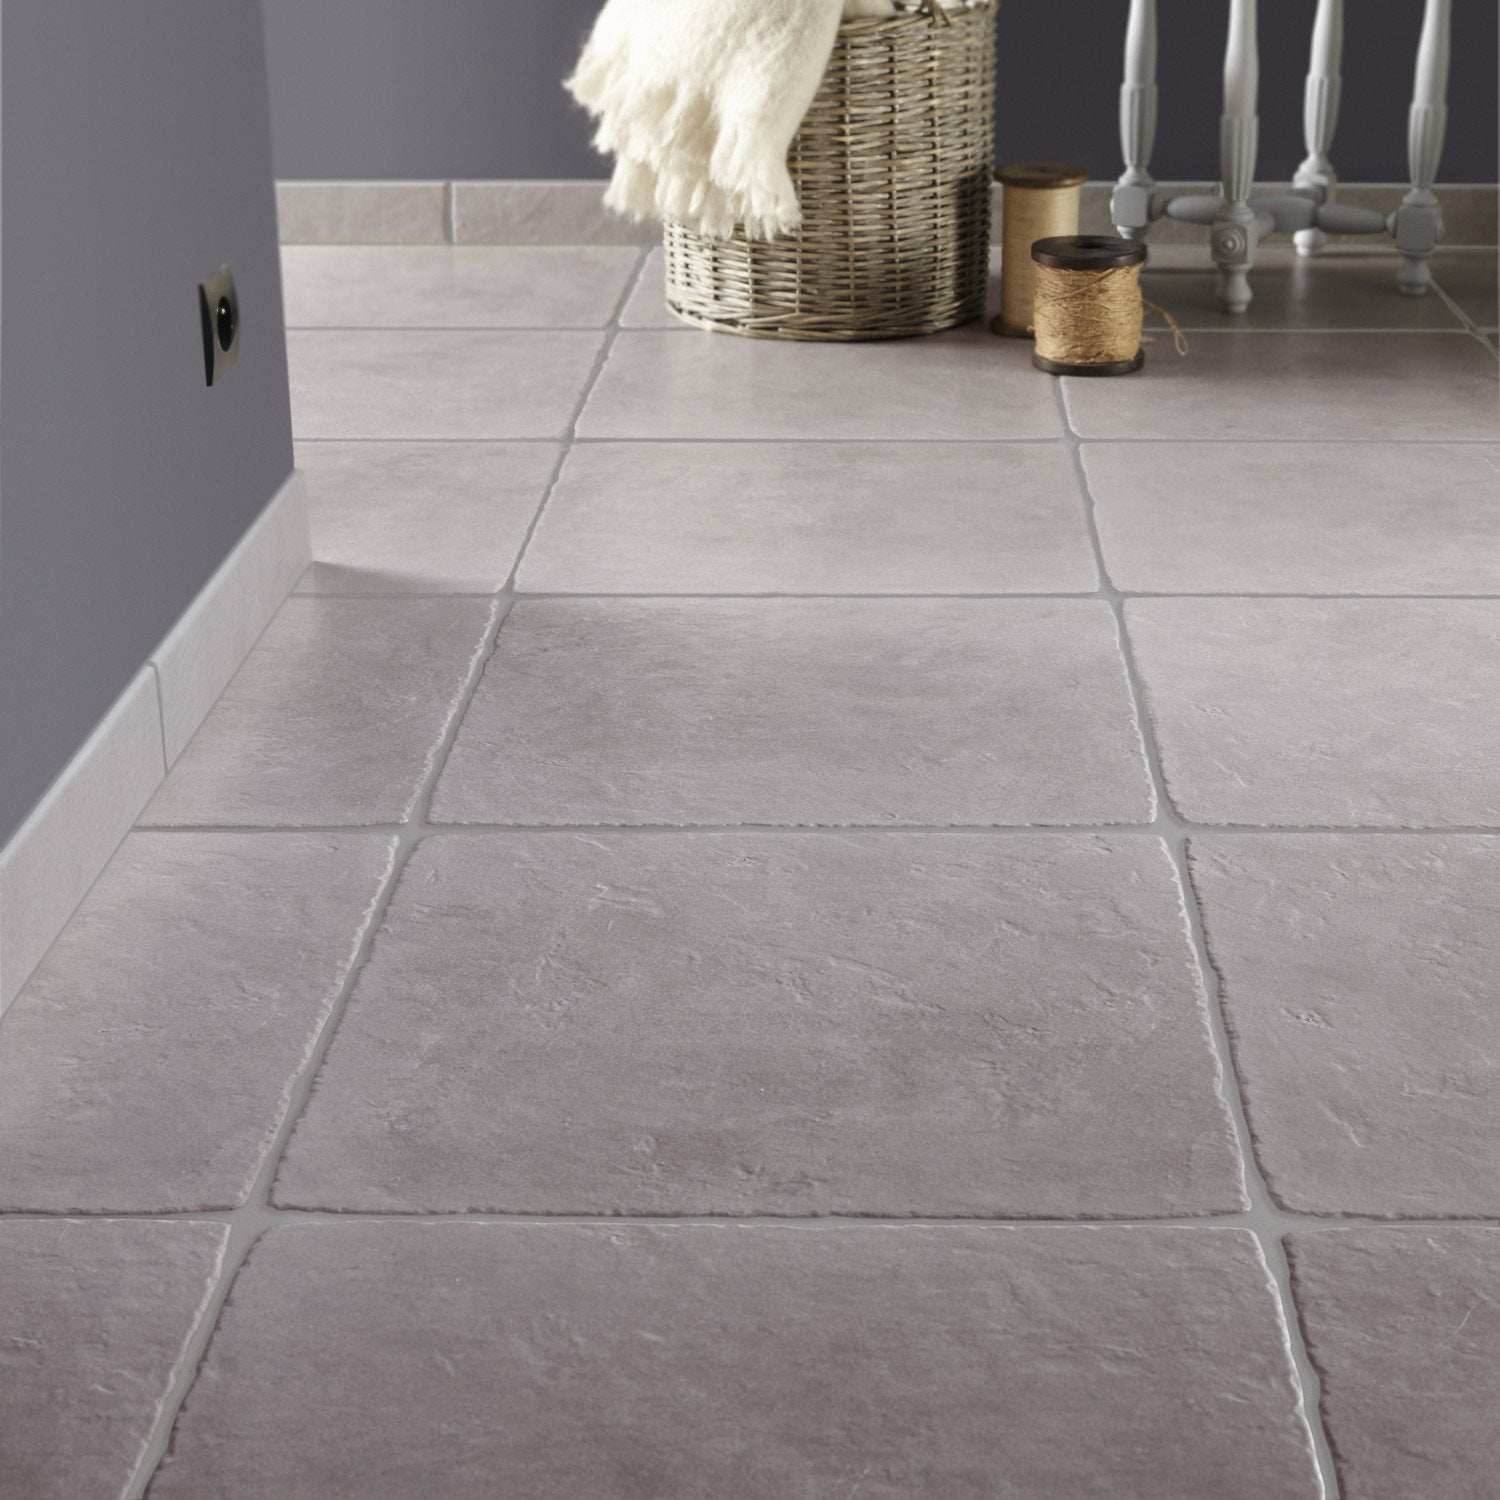 Carrelage leroy merlin for Carrelage salle de bain sol